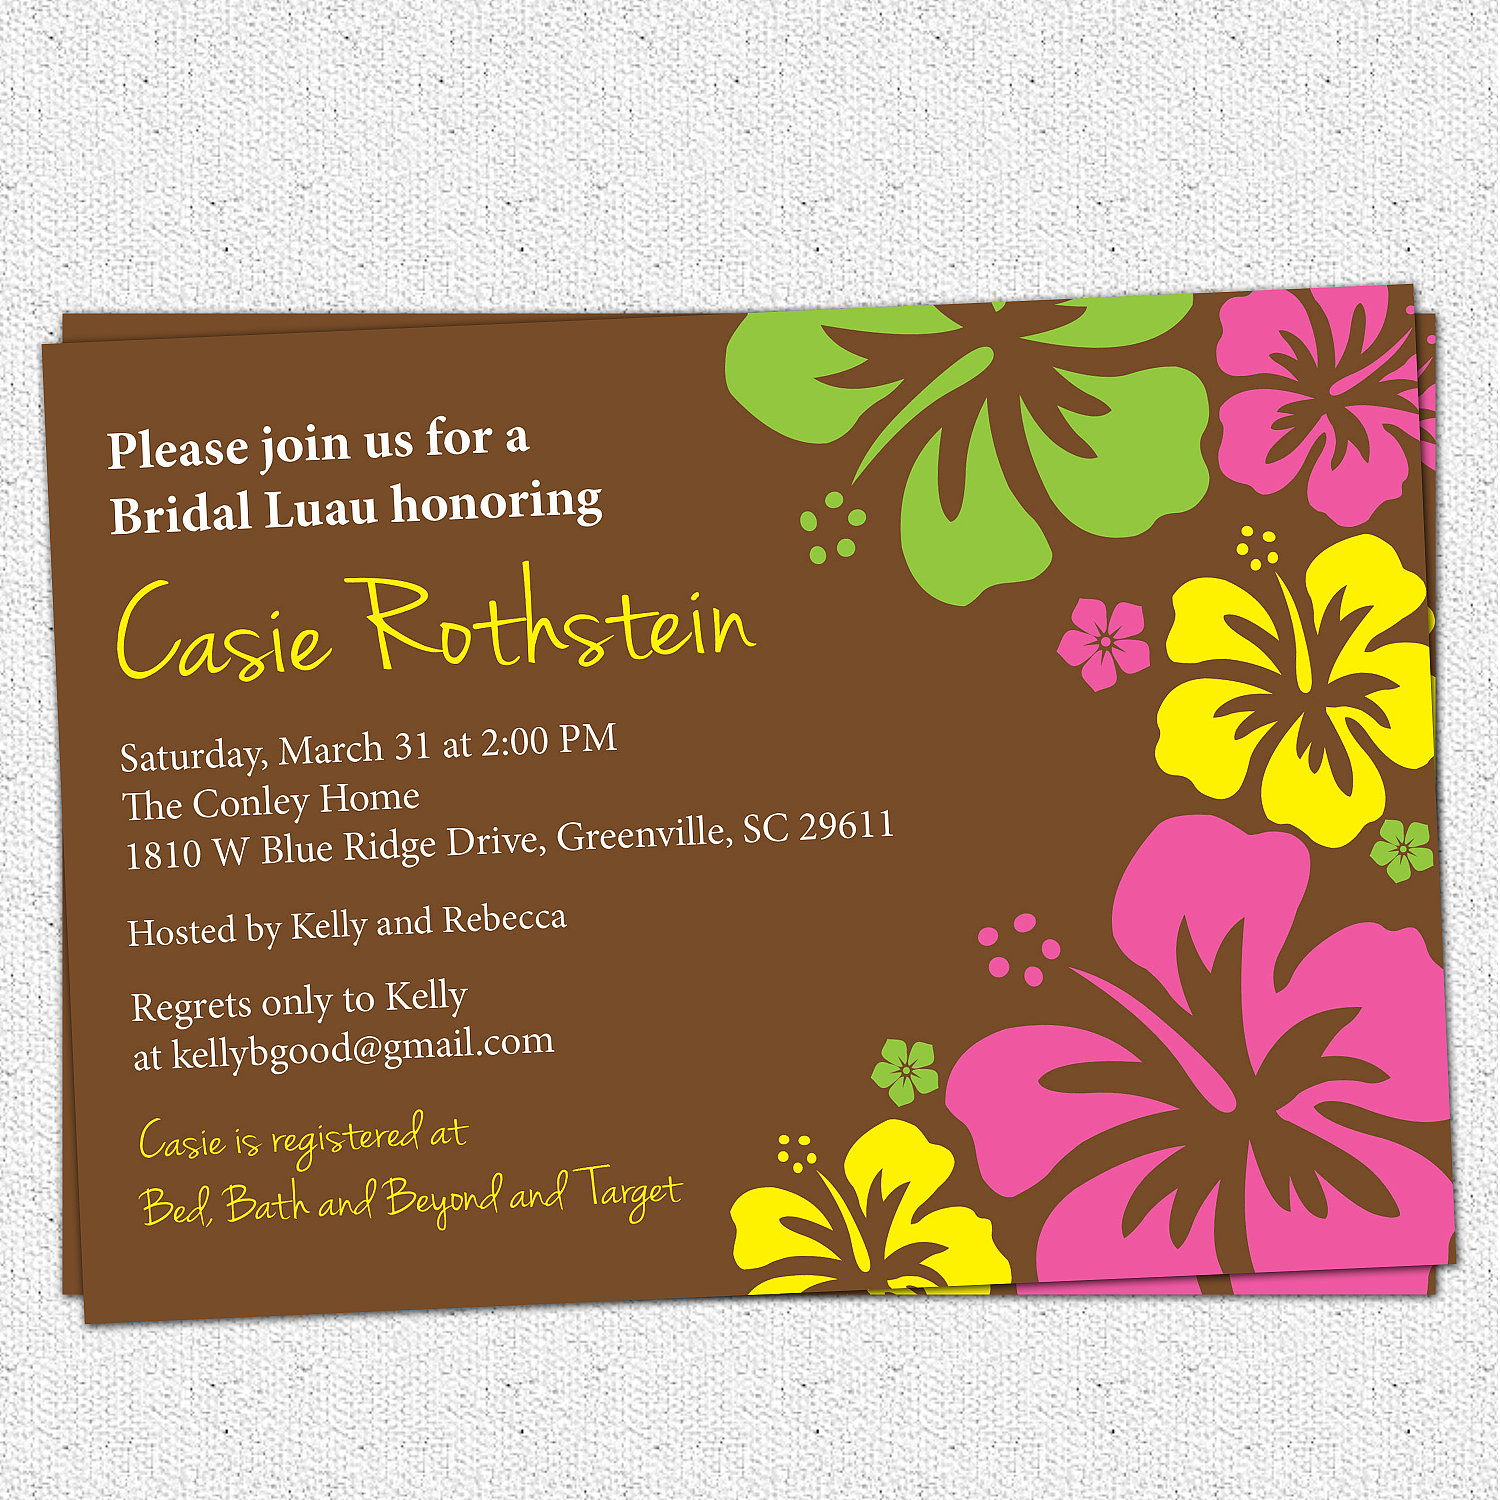 Luau bridal baby shower invitations hawaiian hibiscus birthday luau bridal baby shower invitations hawaiian hibiscus birthday party floral modern filmwisefo